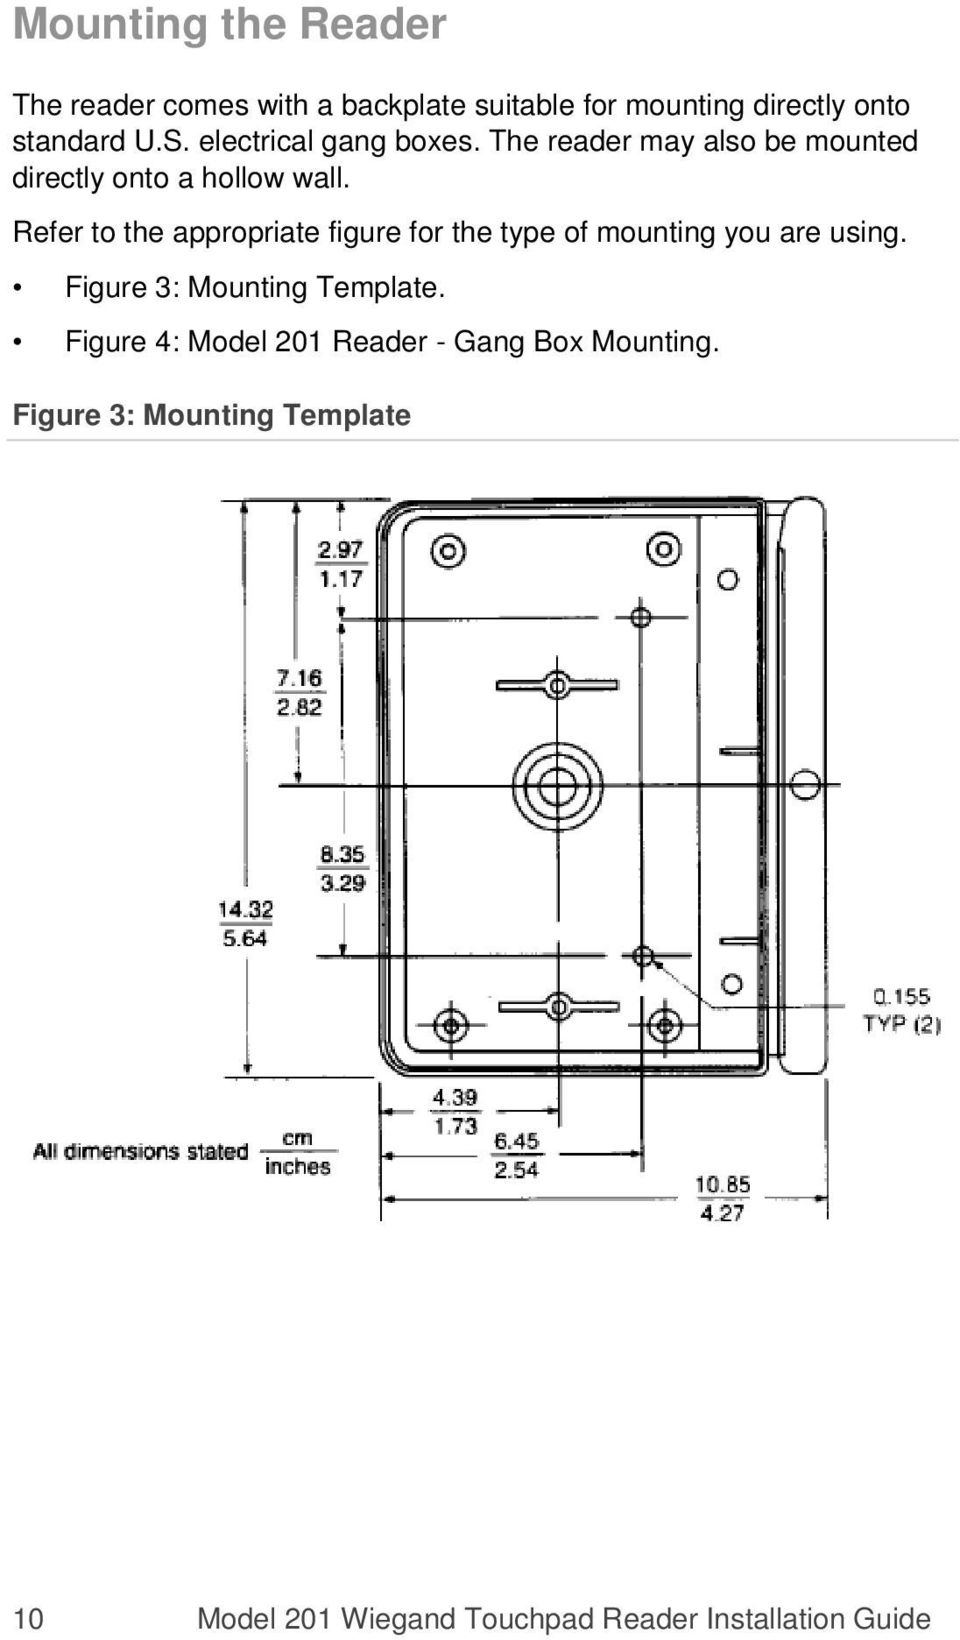 Refer to the appropriate figure for the type of mounting you are using. Figure 3: Mounting Template.